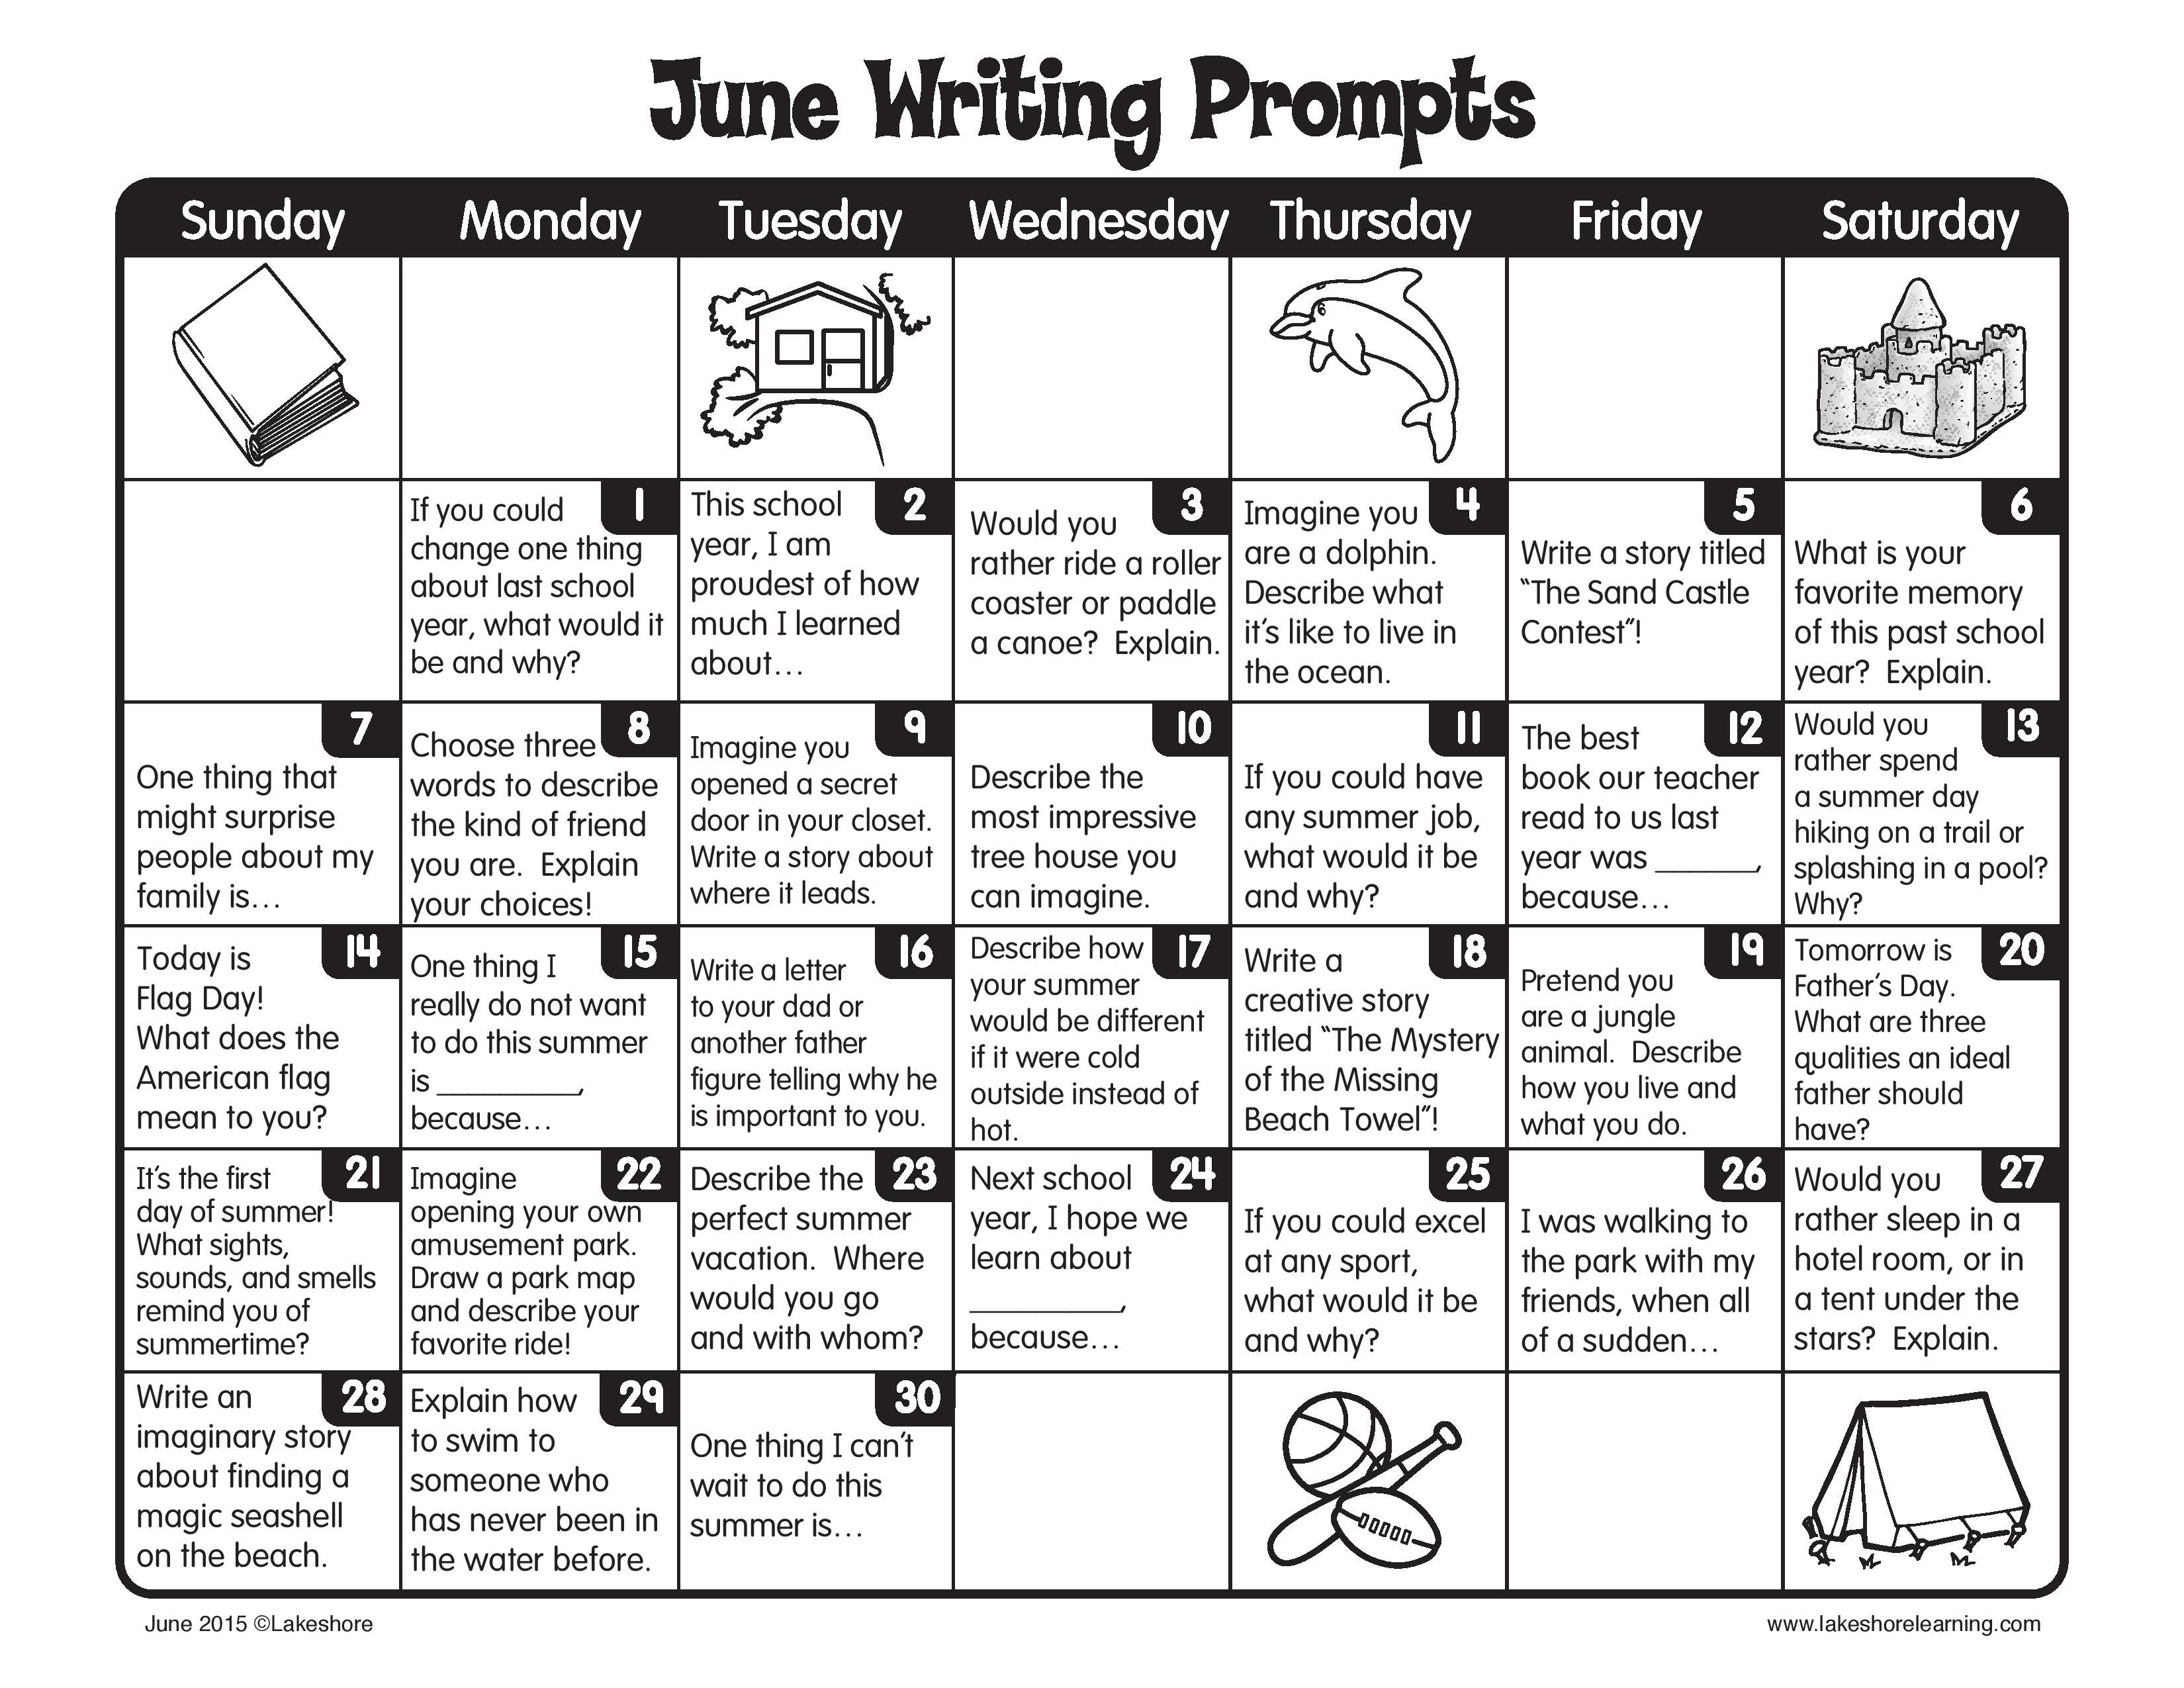 Keep Writing Through The Summer With June Writing Prompts